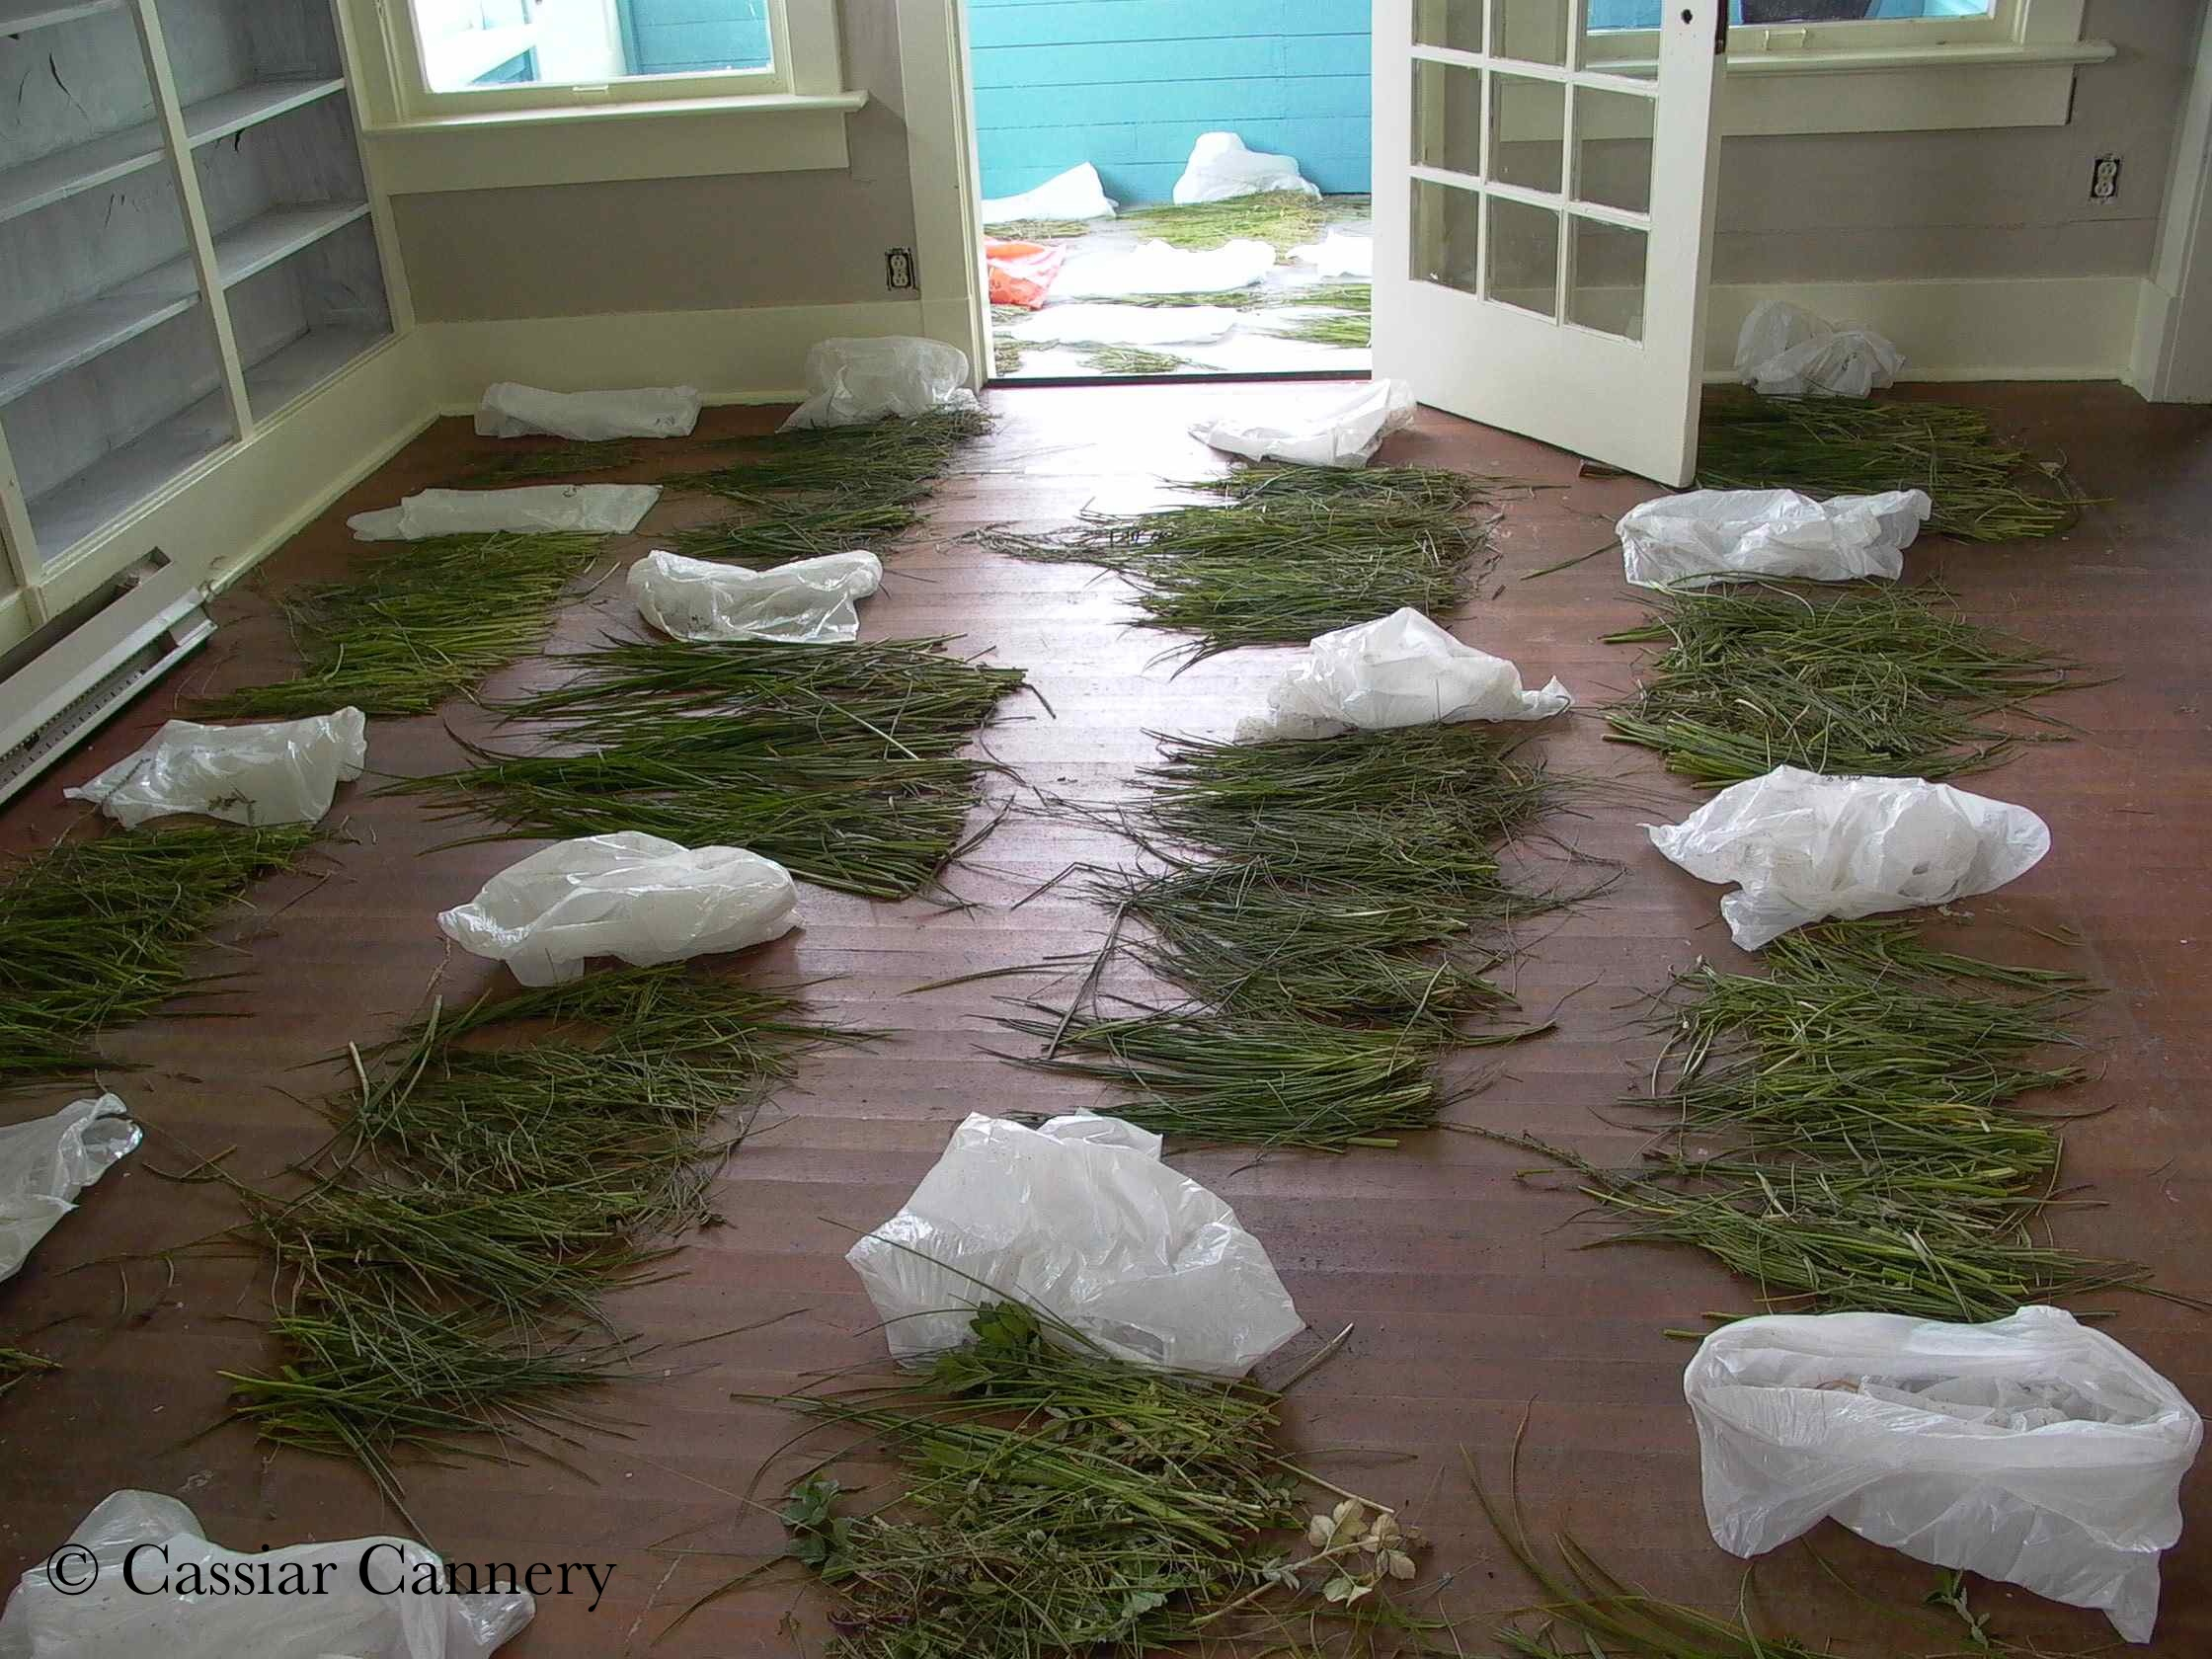 Cassiar Cannery - UNBC Botany Research - samples drying on the floor of one of the houses